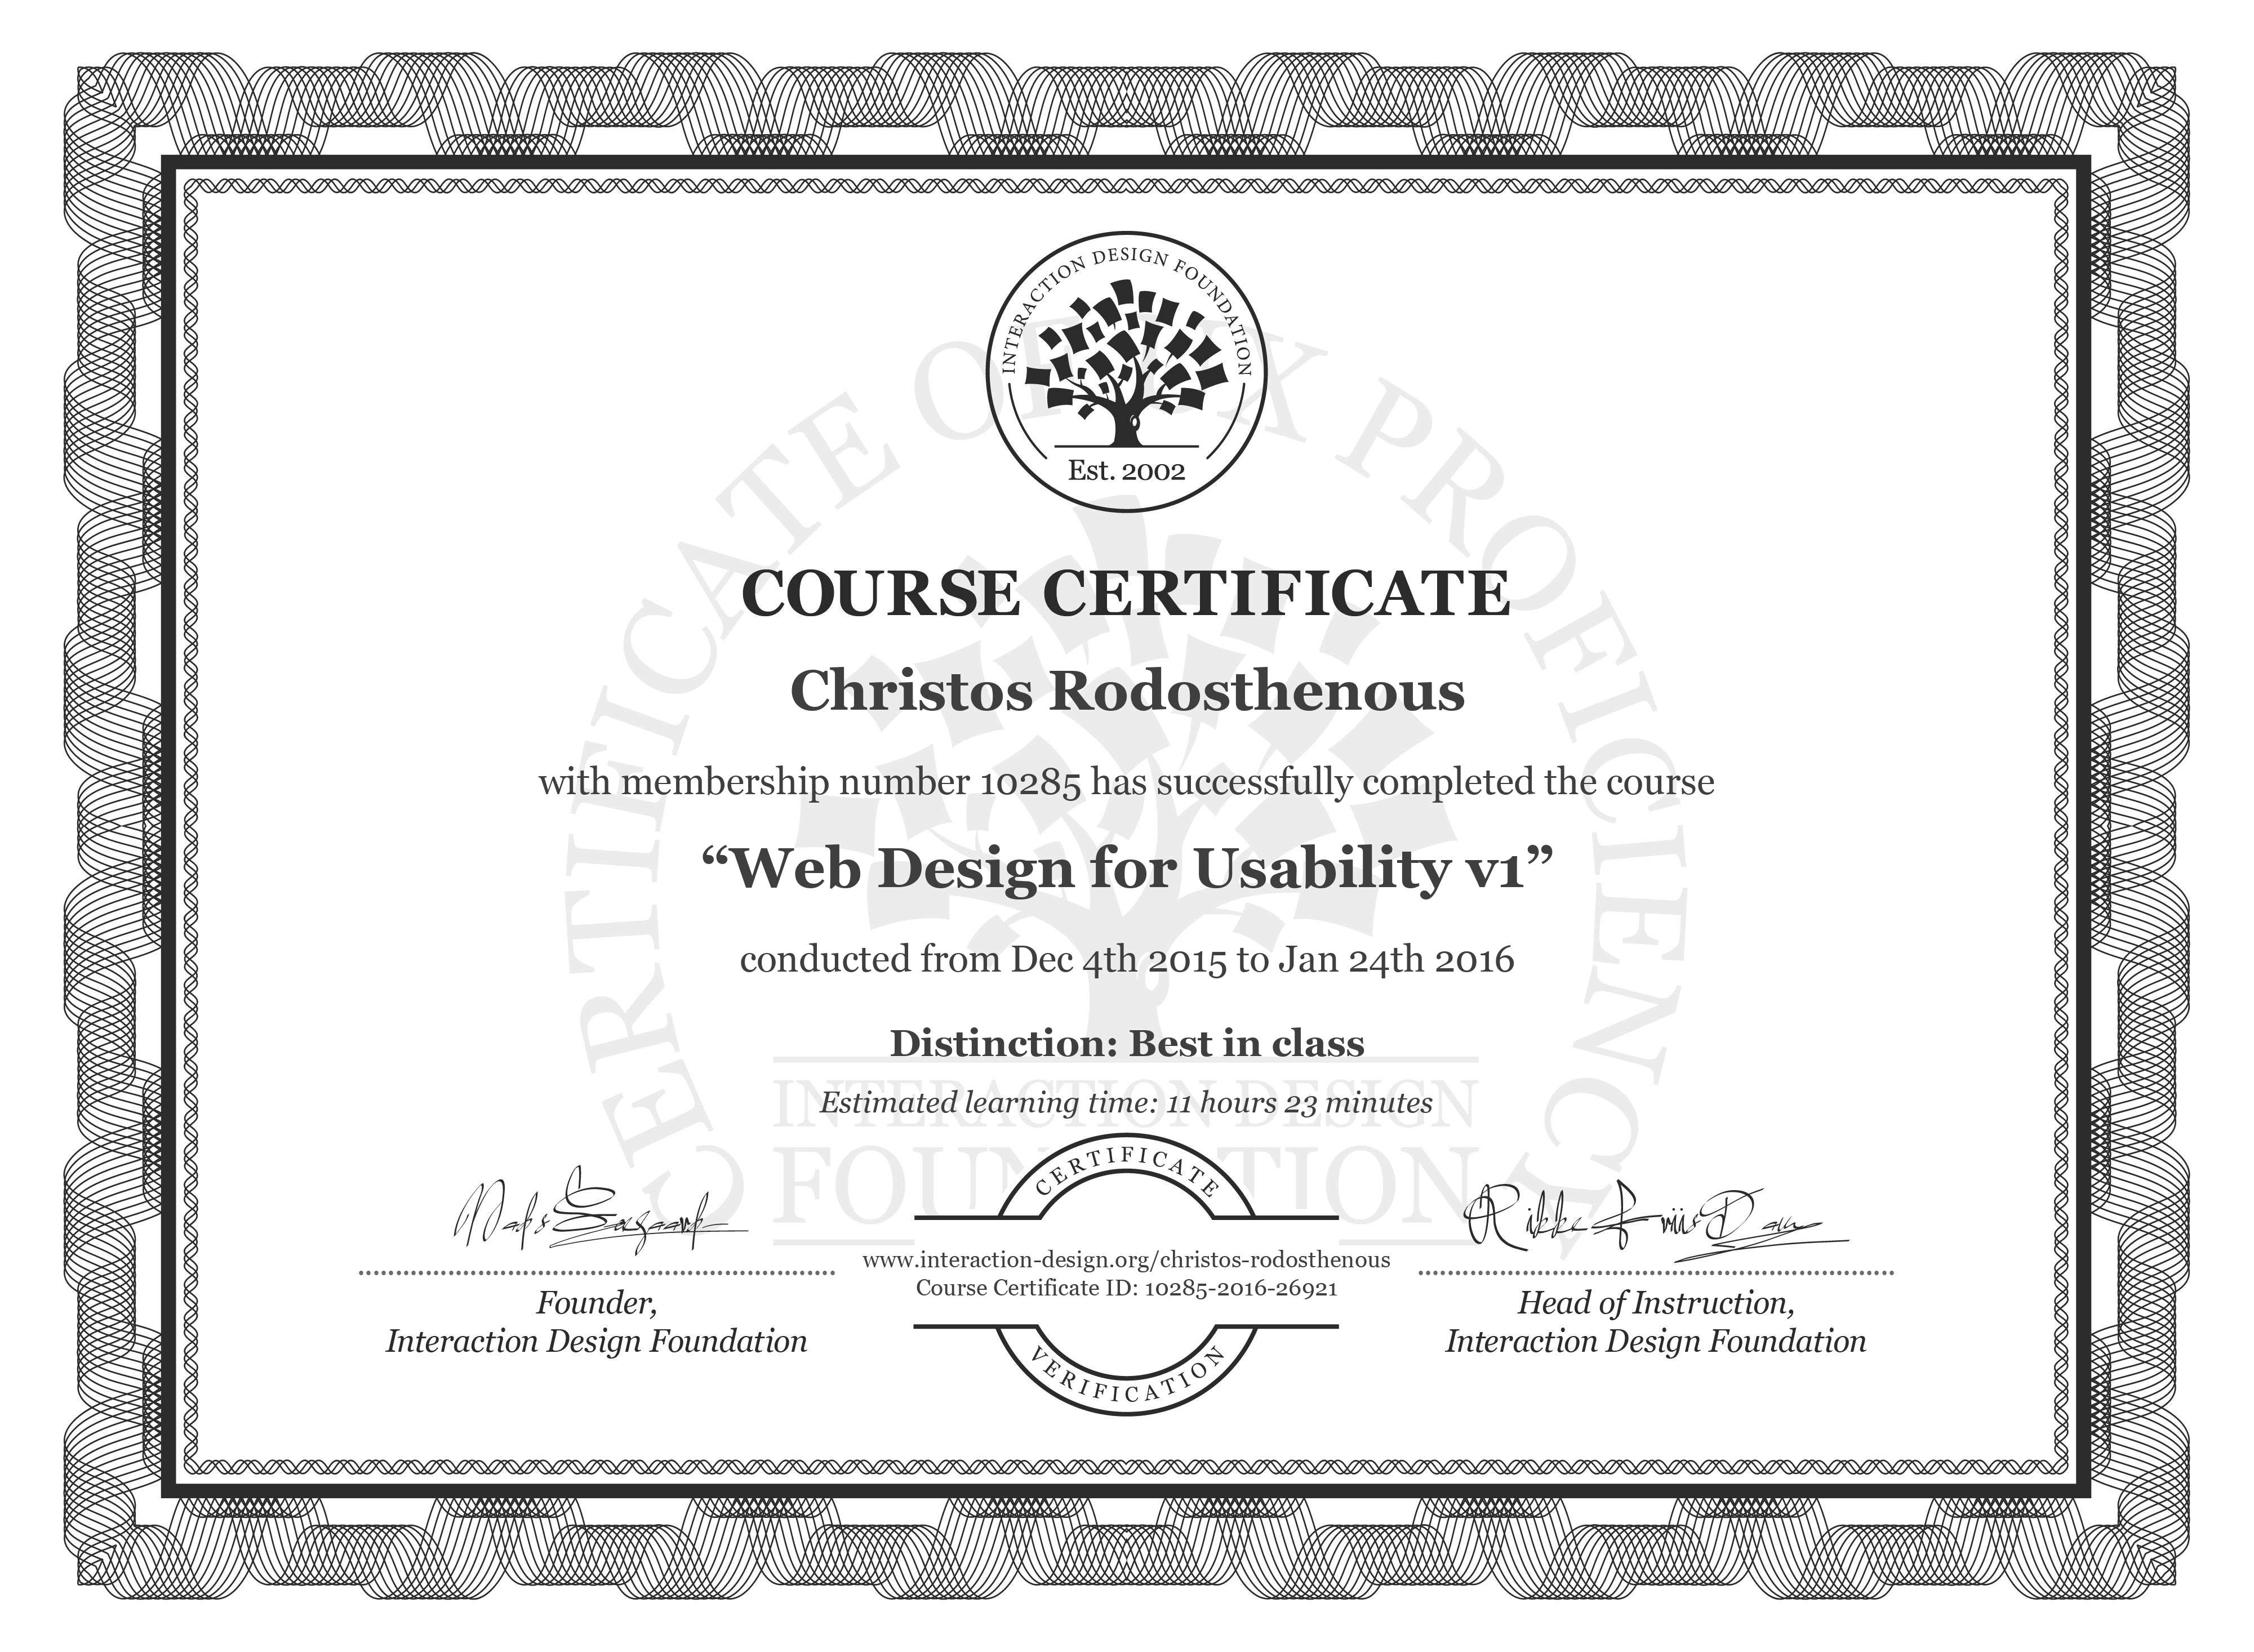 Christos Rodosthenous's Course Certificate: Web Design for Usability